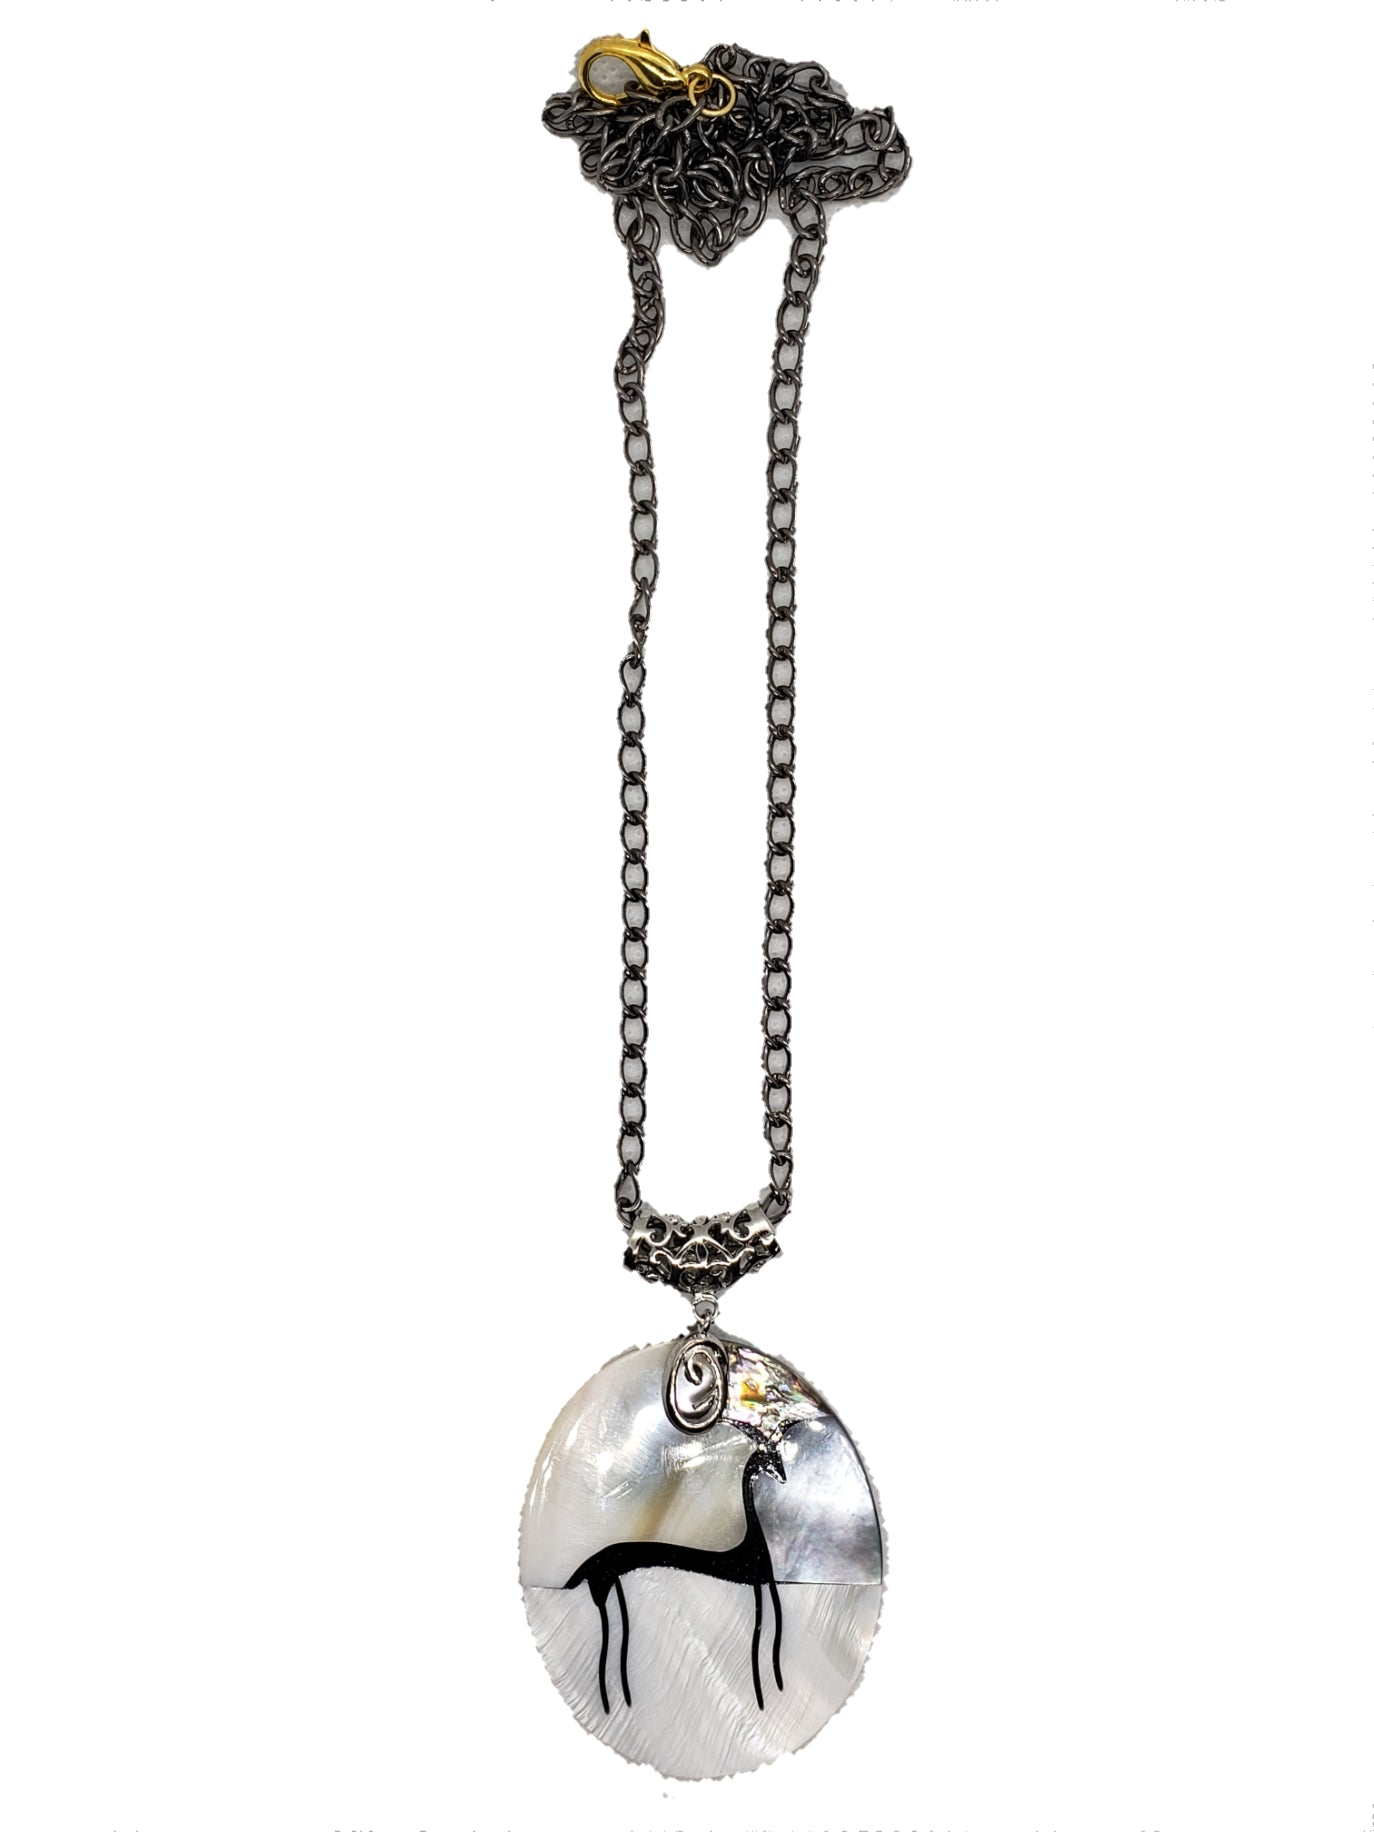 Shell Stone Necklace - The Bauble Shop